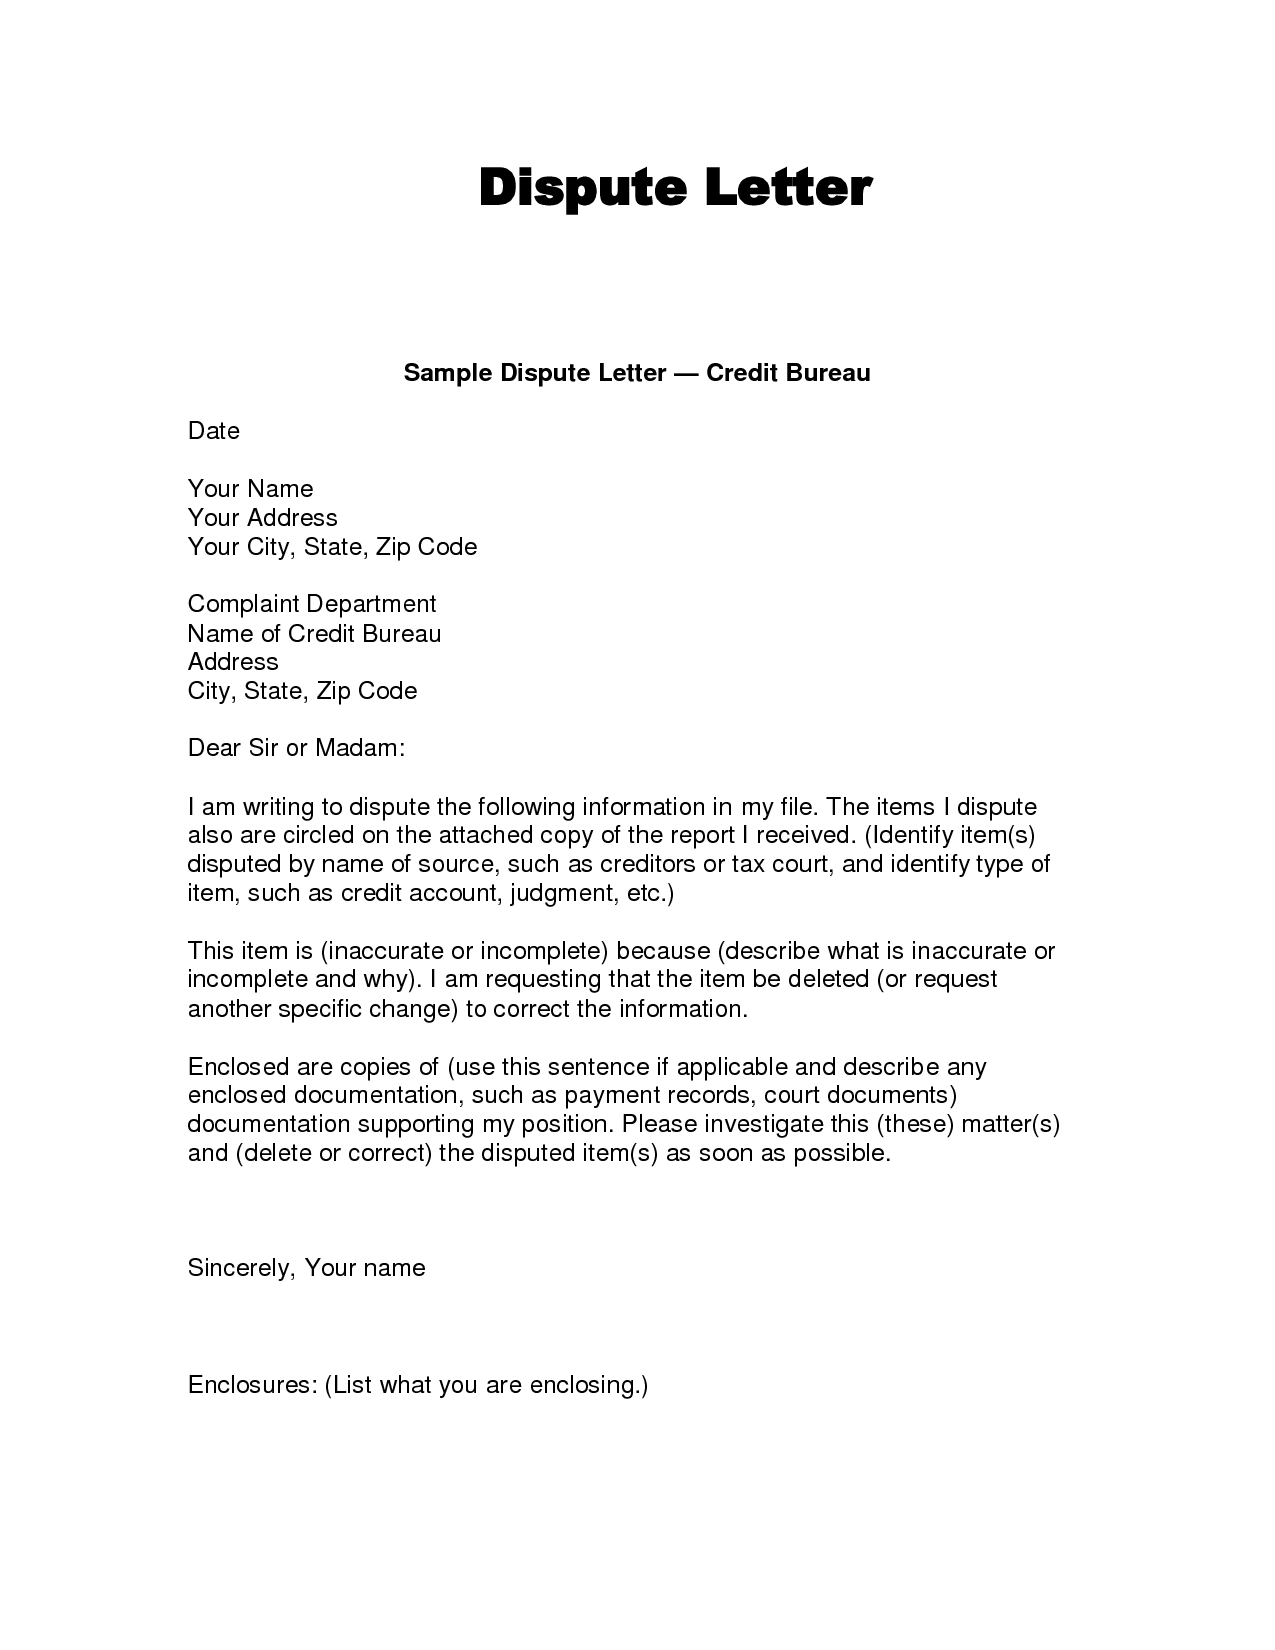 Dispute Letter Template Word Geccetackletartsco - Debt dispute letter template